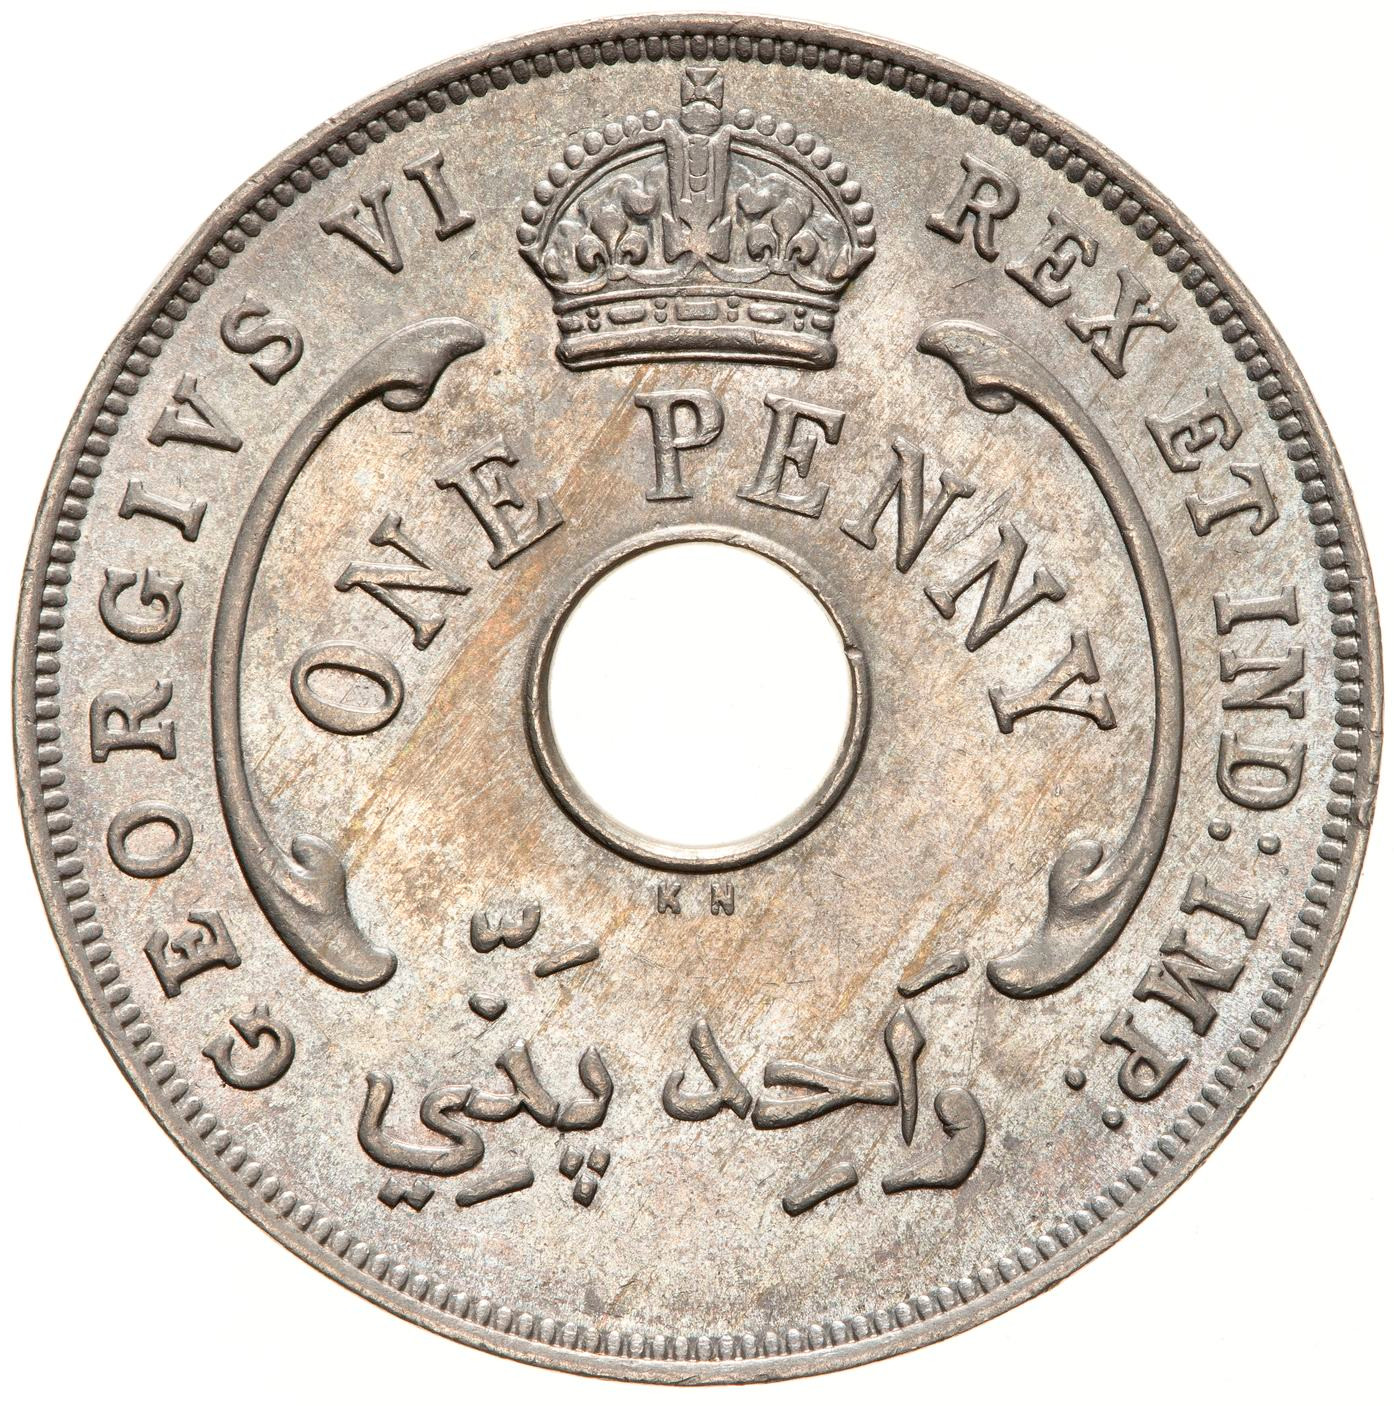 One Penny (CuproNickel): Photo Coin - 1 Penny, British West Africa, 1947